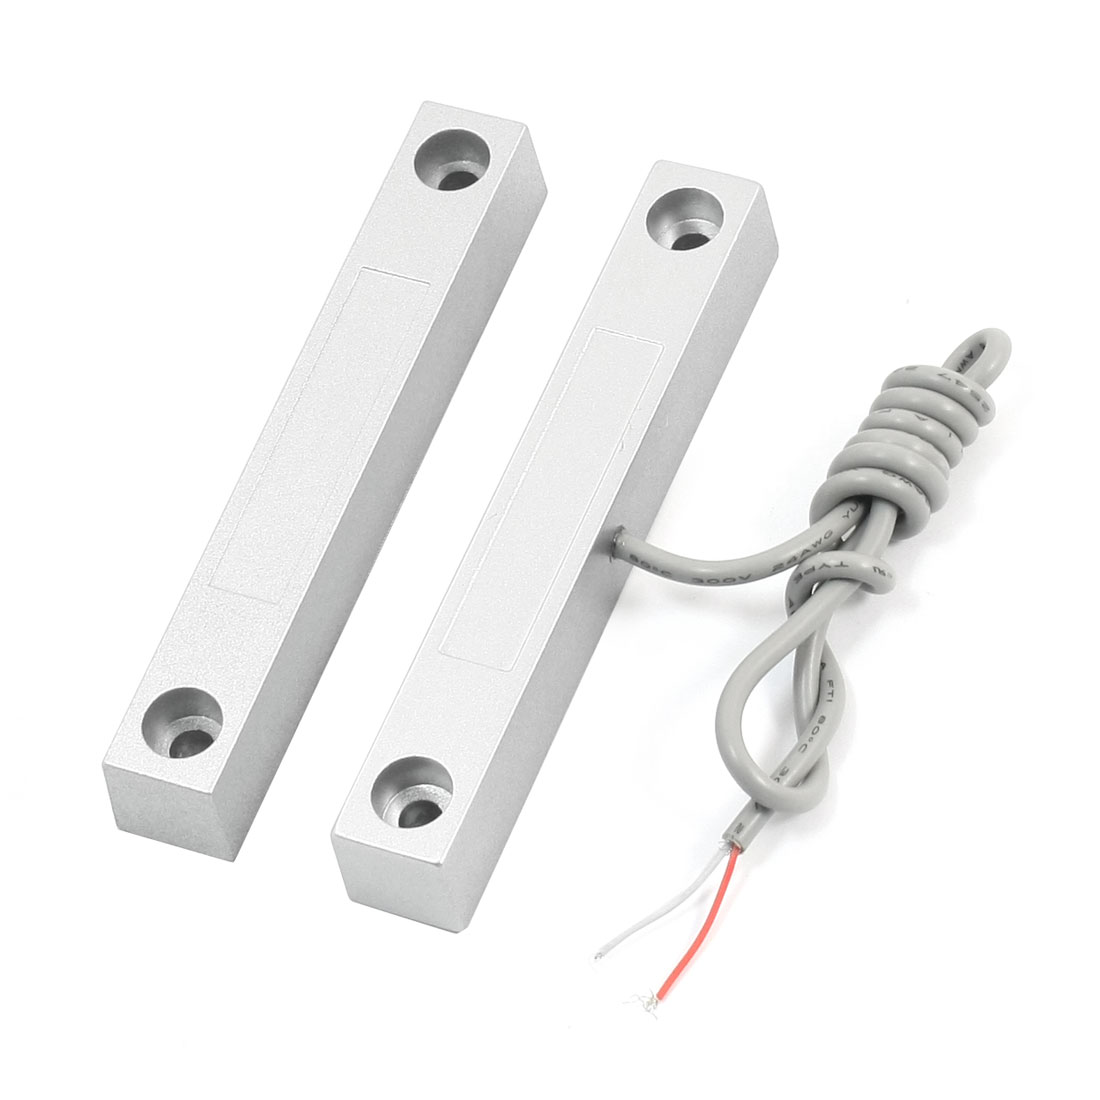 NO Wired Rolling Gate Door Magnetic Contact Reed Switch Security Alarm